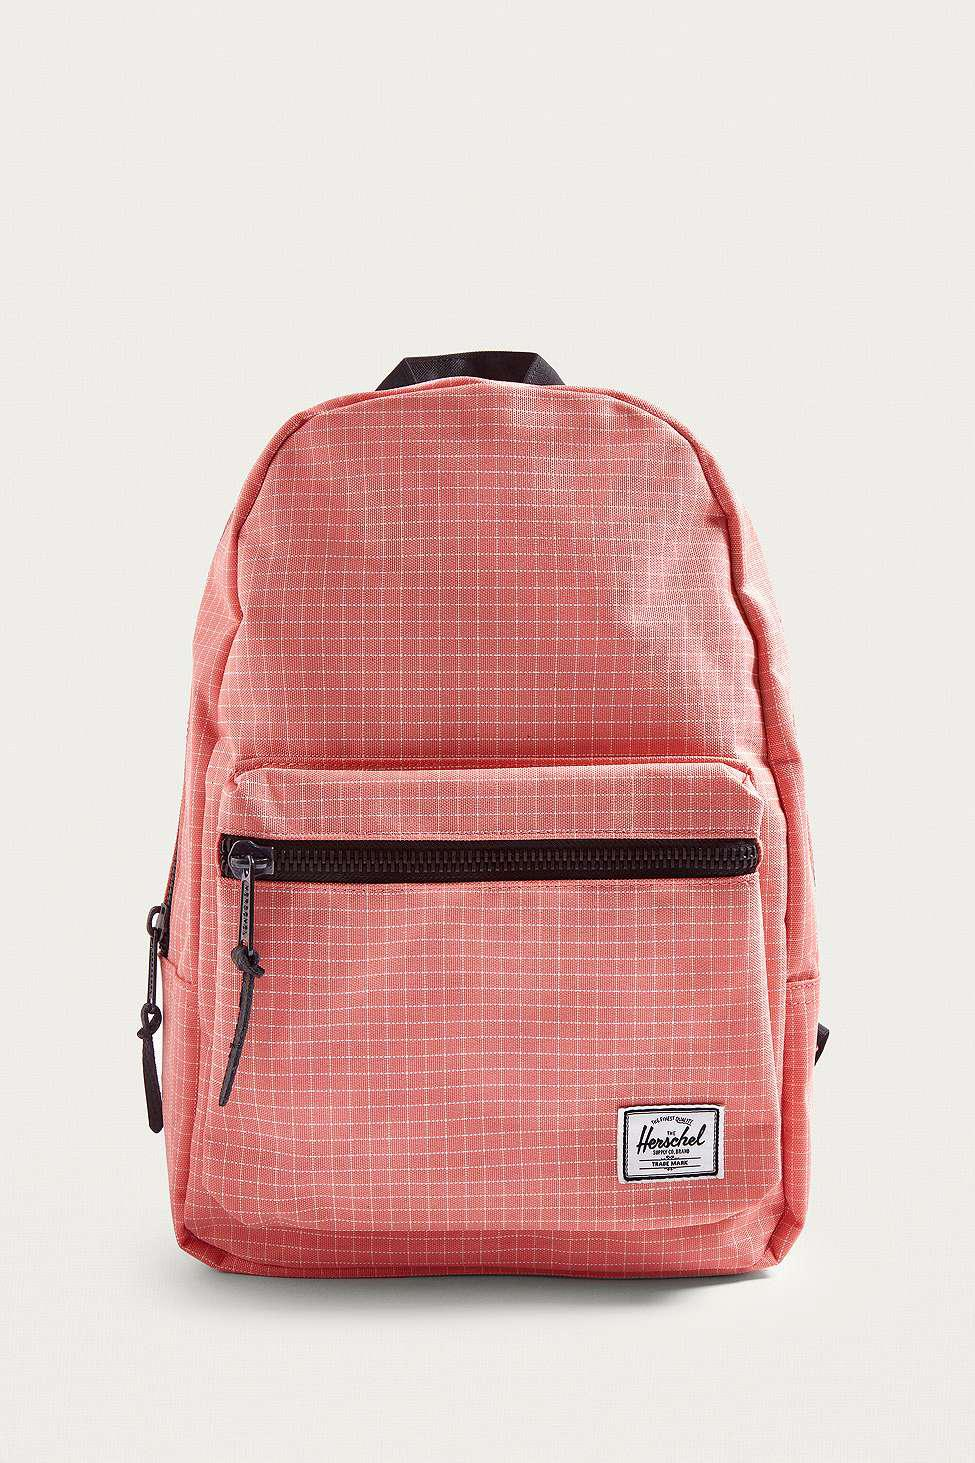 1b86e527306 Gallery. Previously sold at  Urban Outfitters · Women s Mini Backpack ...